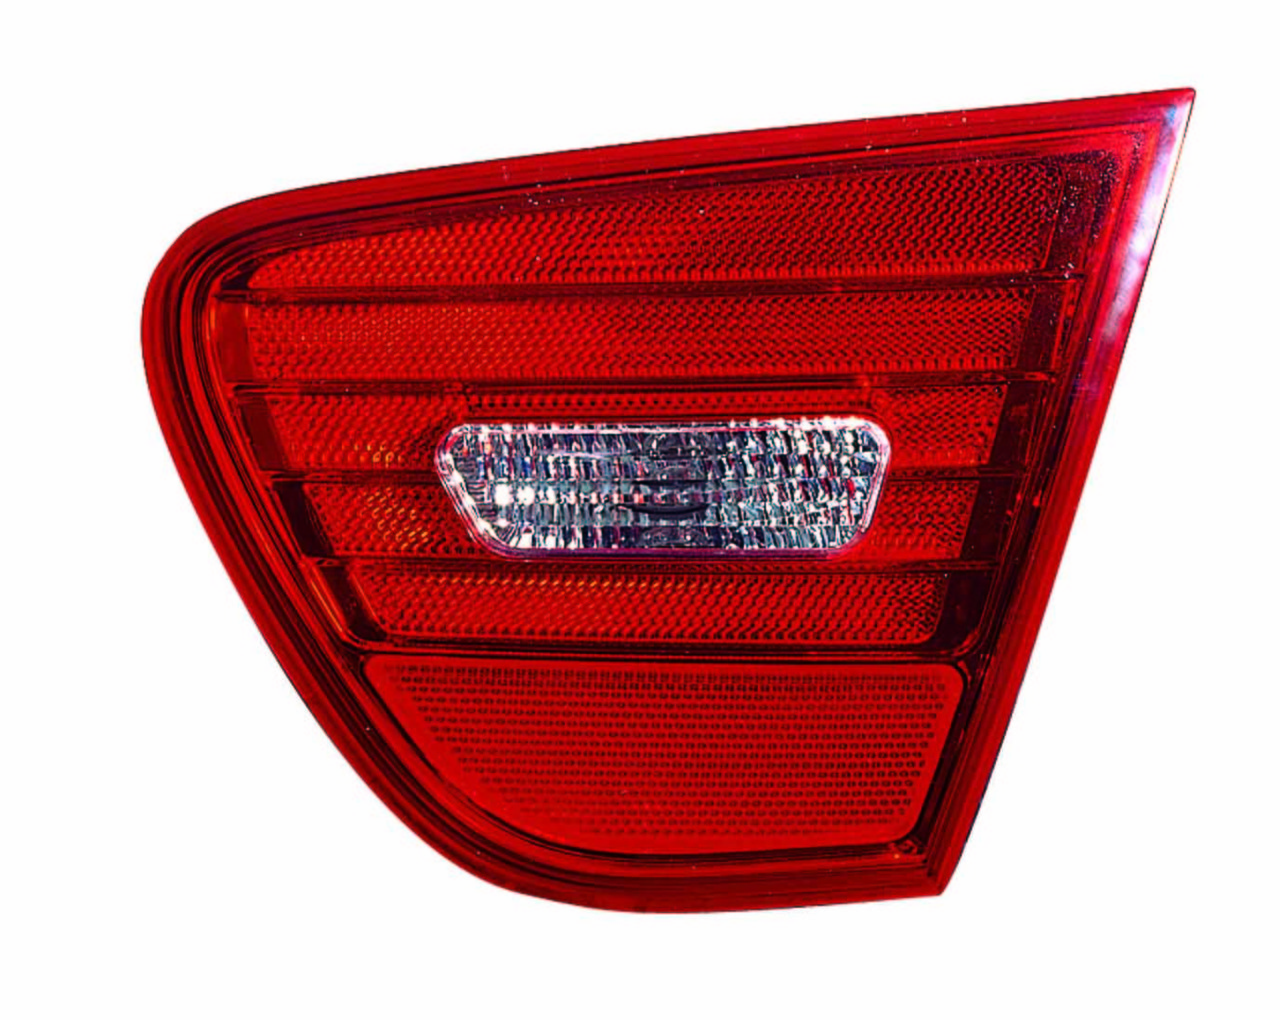 Hyundai Elantra sedan 2007 2008 2009 2010 tail light inner right passenger